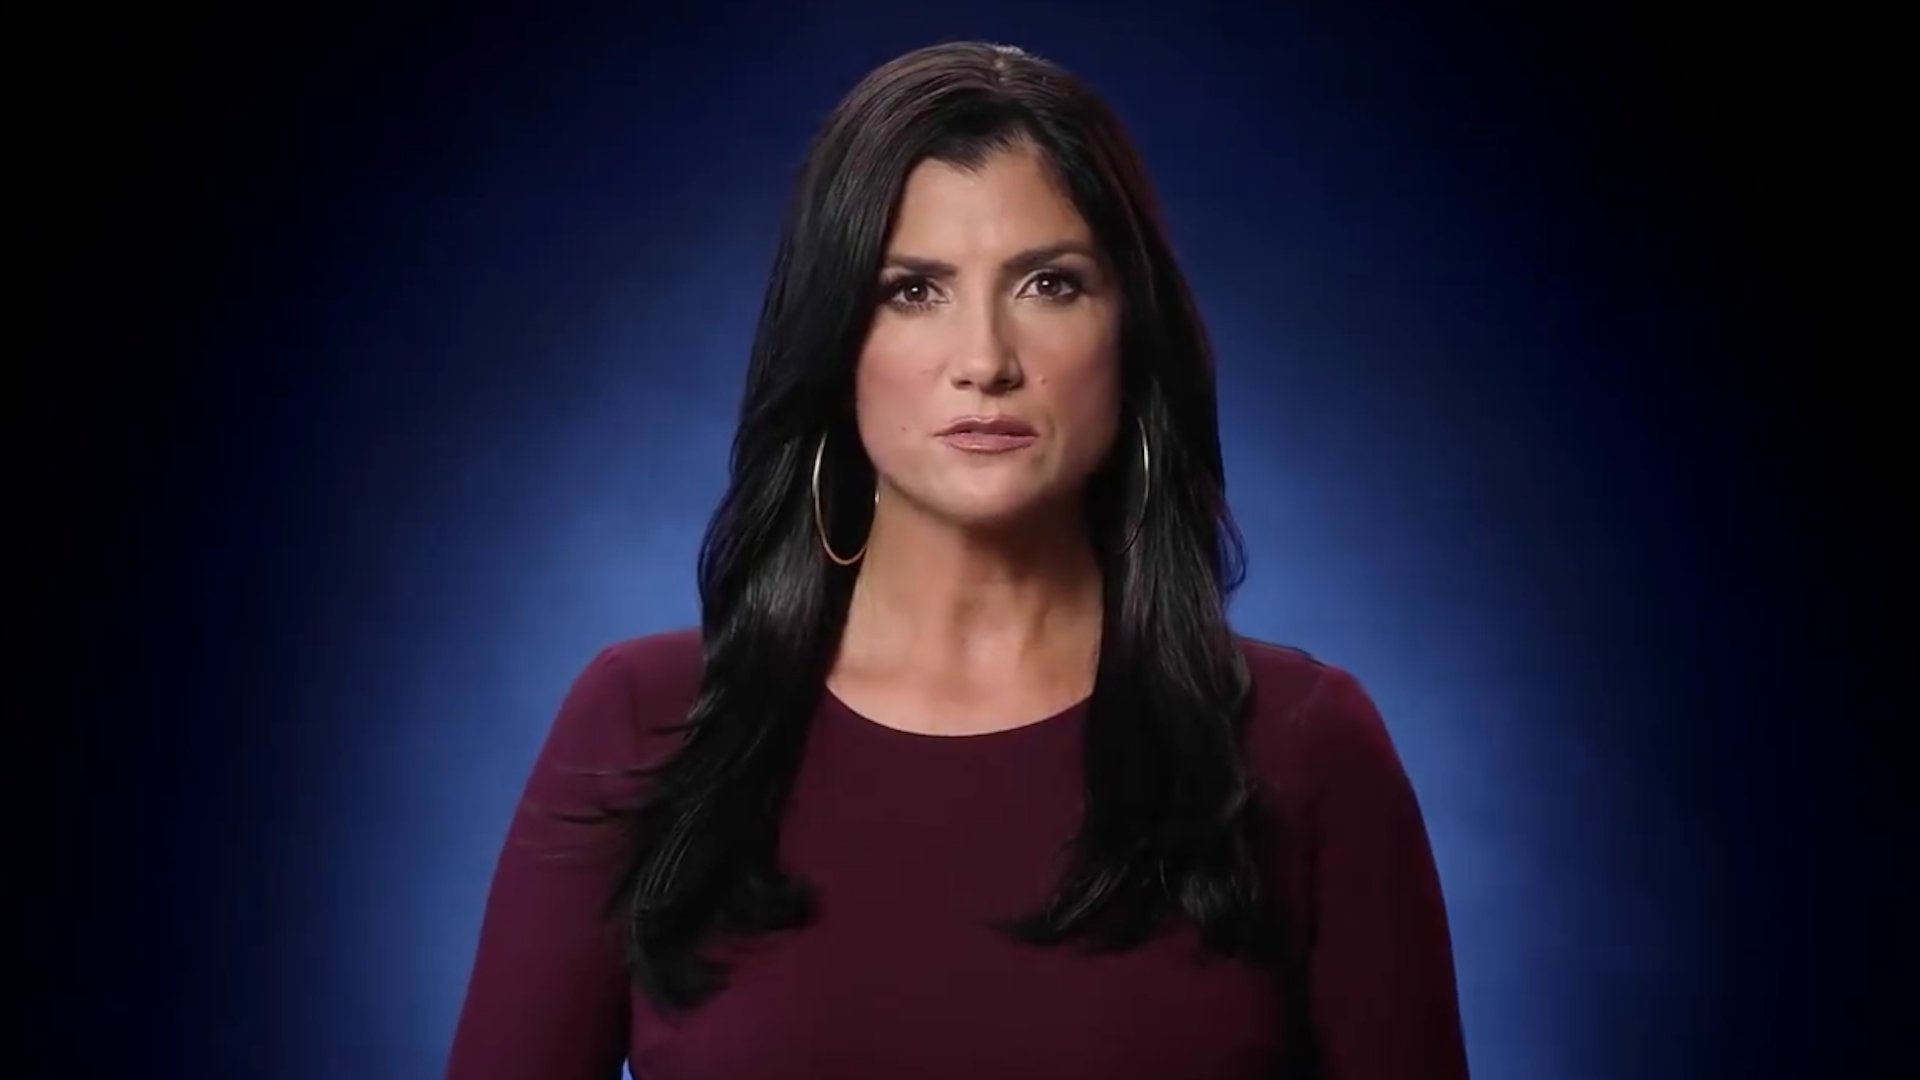 What the demise of NRATV says about conservatism today